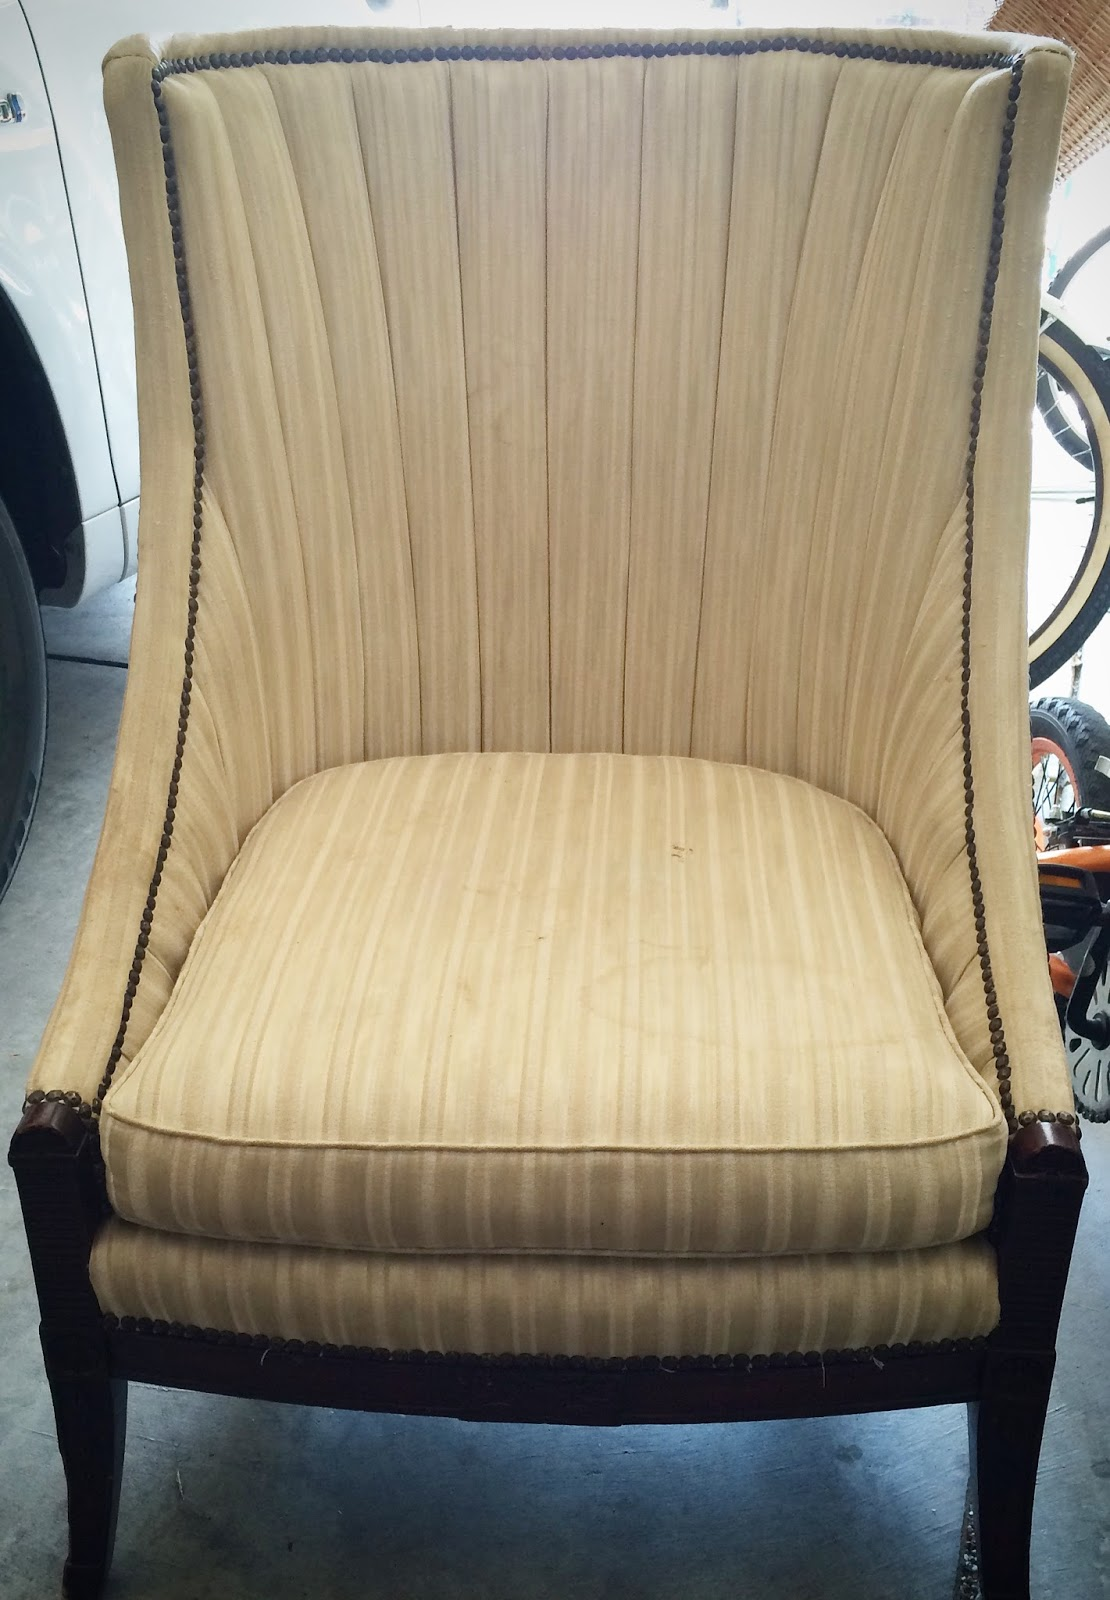 My Neighbor Knows I Love To Update Furniture, And Asked If I Do Upholstery  Work. The Truth Is That I Like To Dabble In Upholstery, But I Learn From  Each New ...